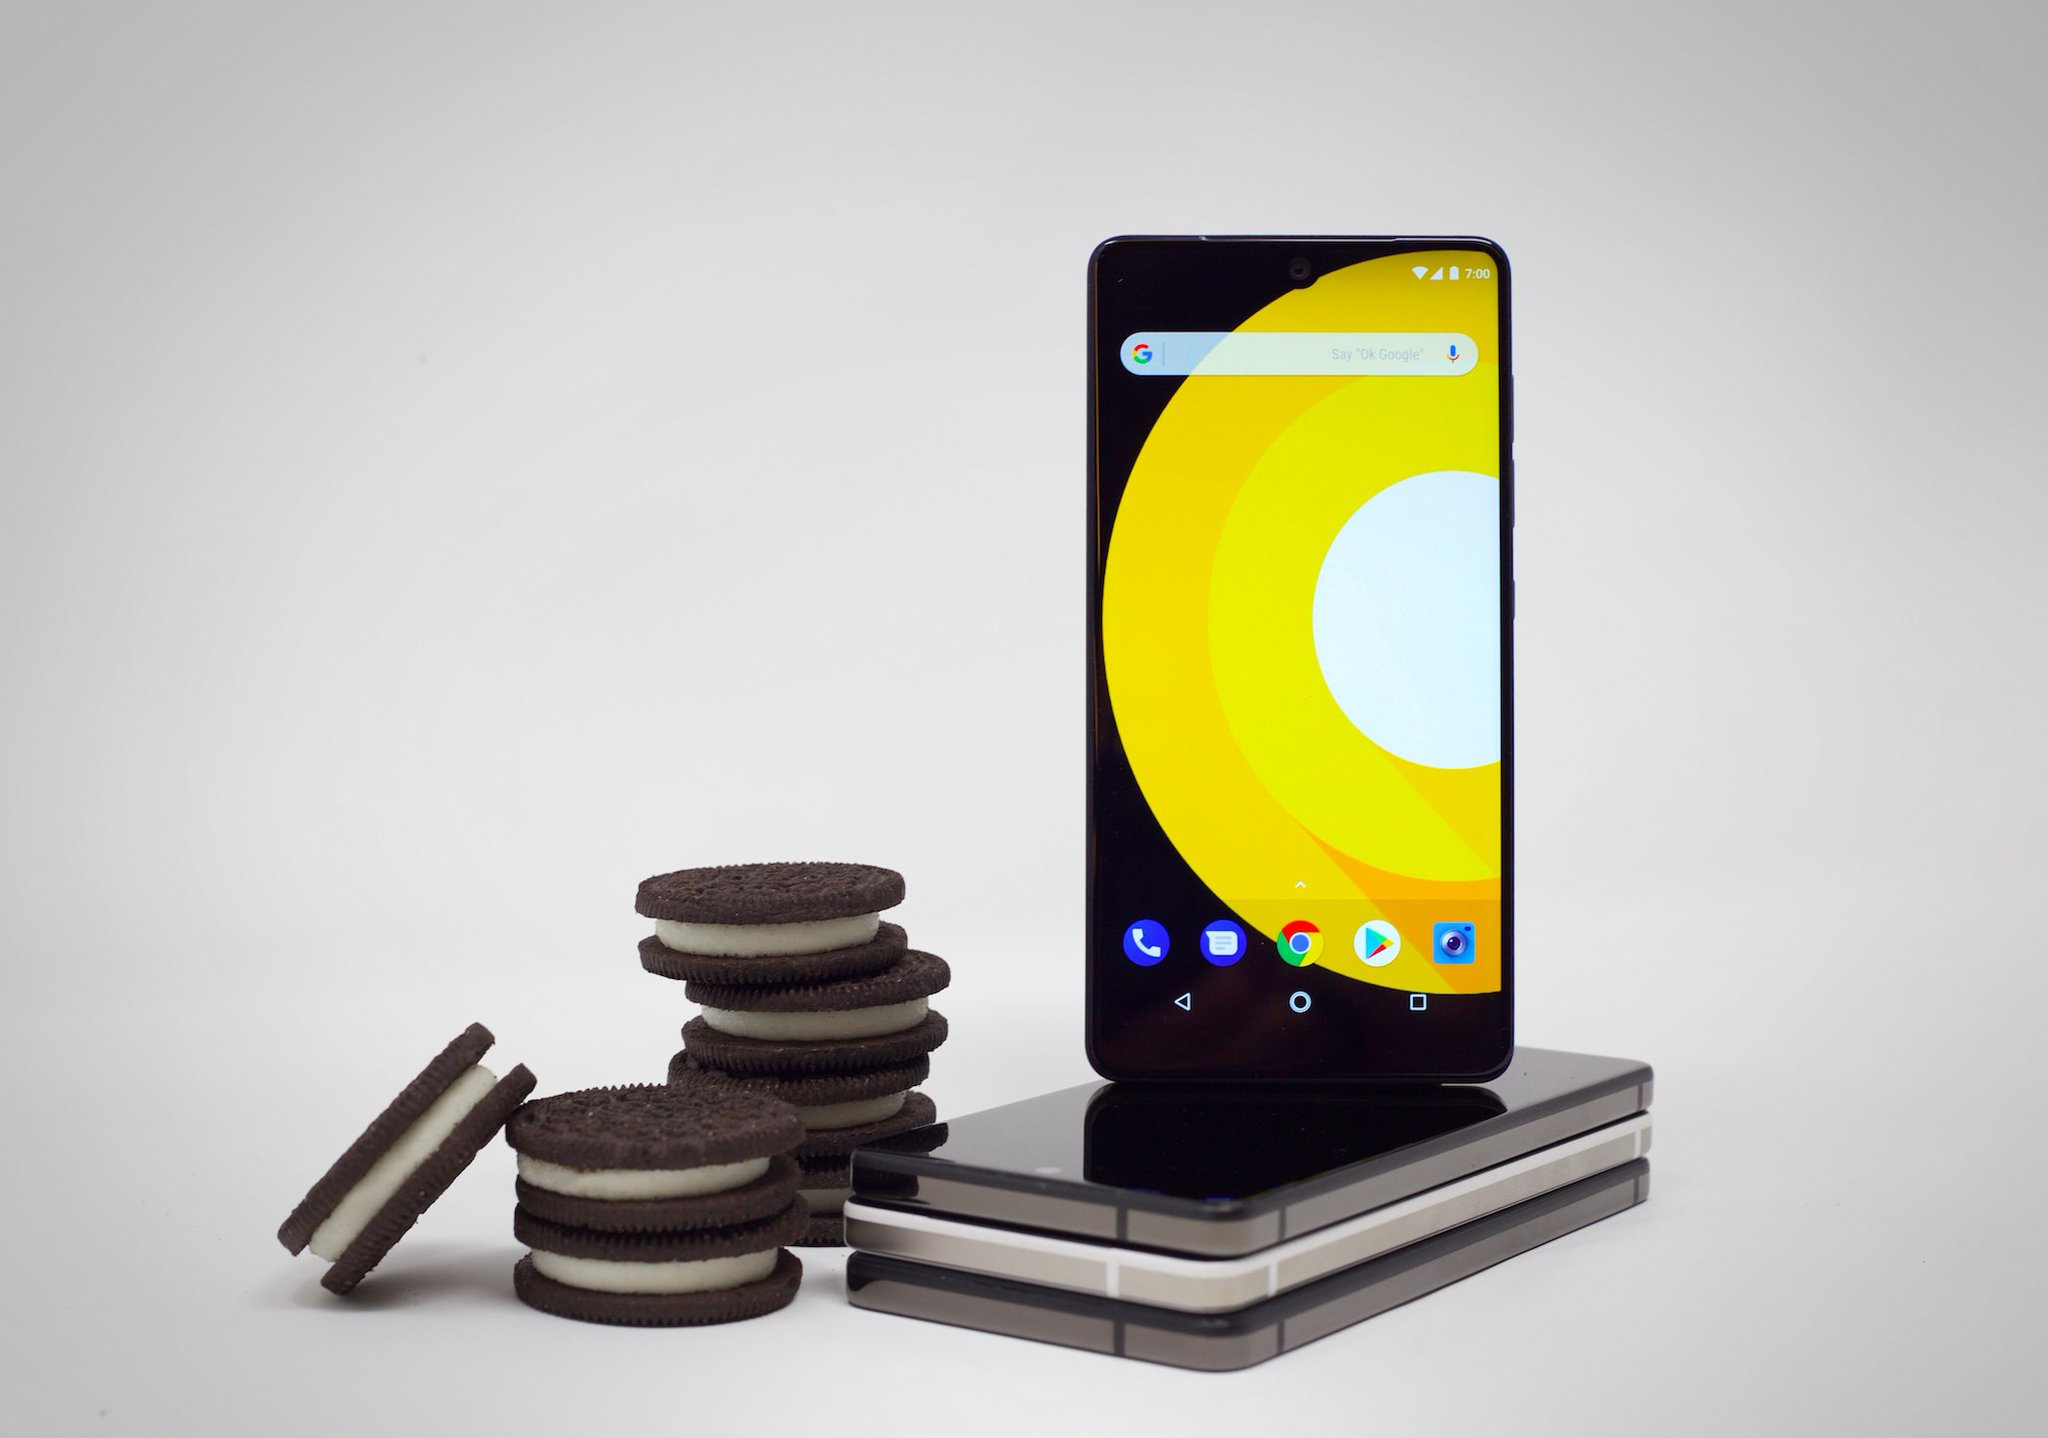 Essential offers up an Android Oreo beta for the Essential Phone https://t.co/rWpLG6pWn1 by @etherington https://t.co/J7iN5jJEhu